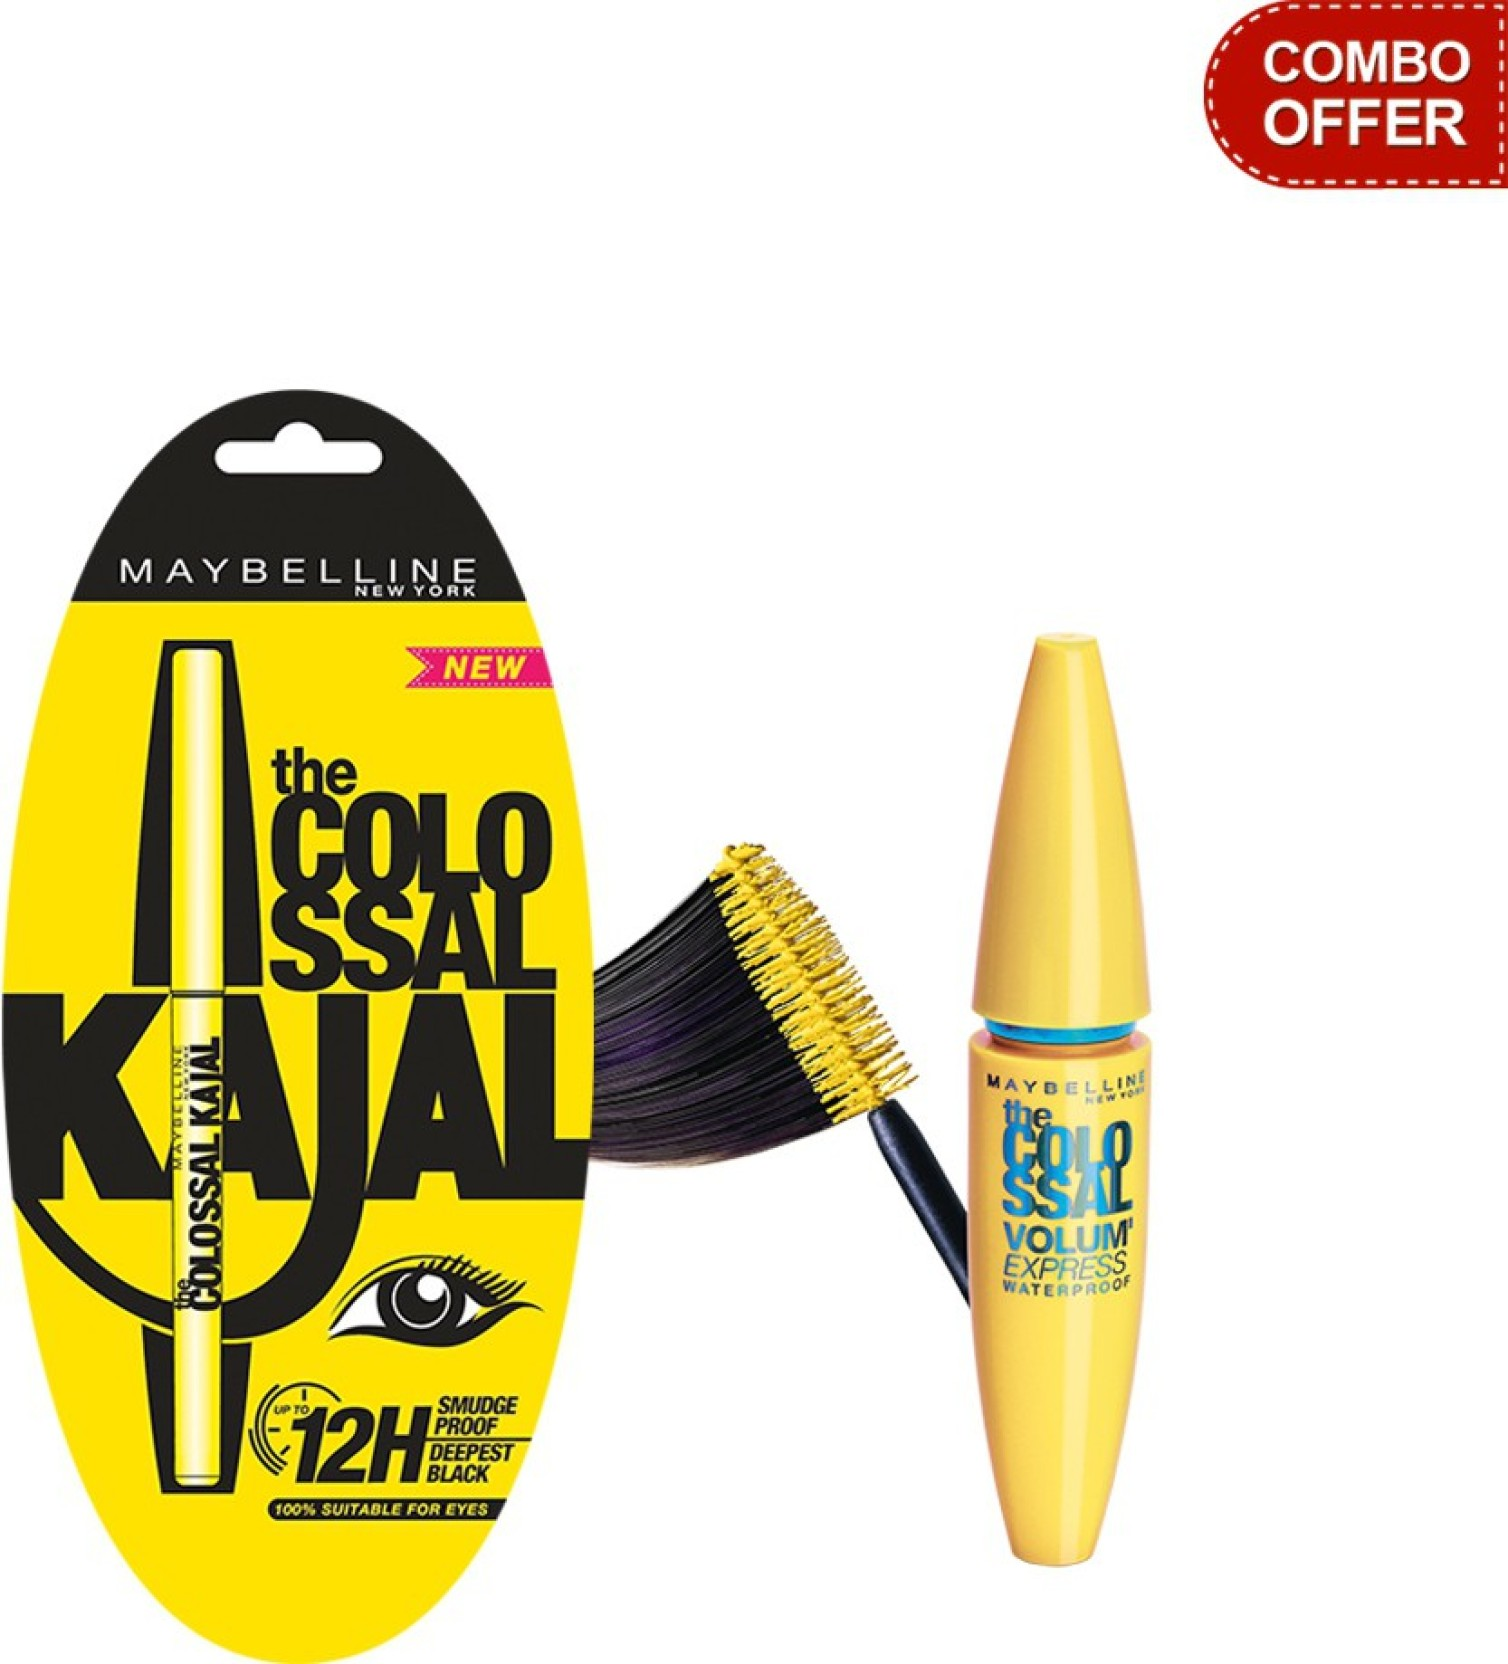 Maybelline The Colossal Kajal With Volum Express Waterproof Barbie Mascara Magnum Share